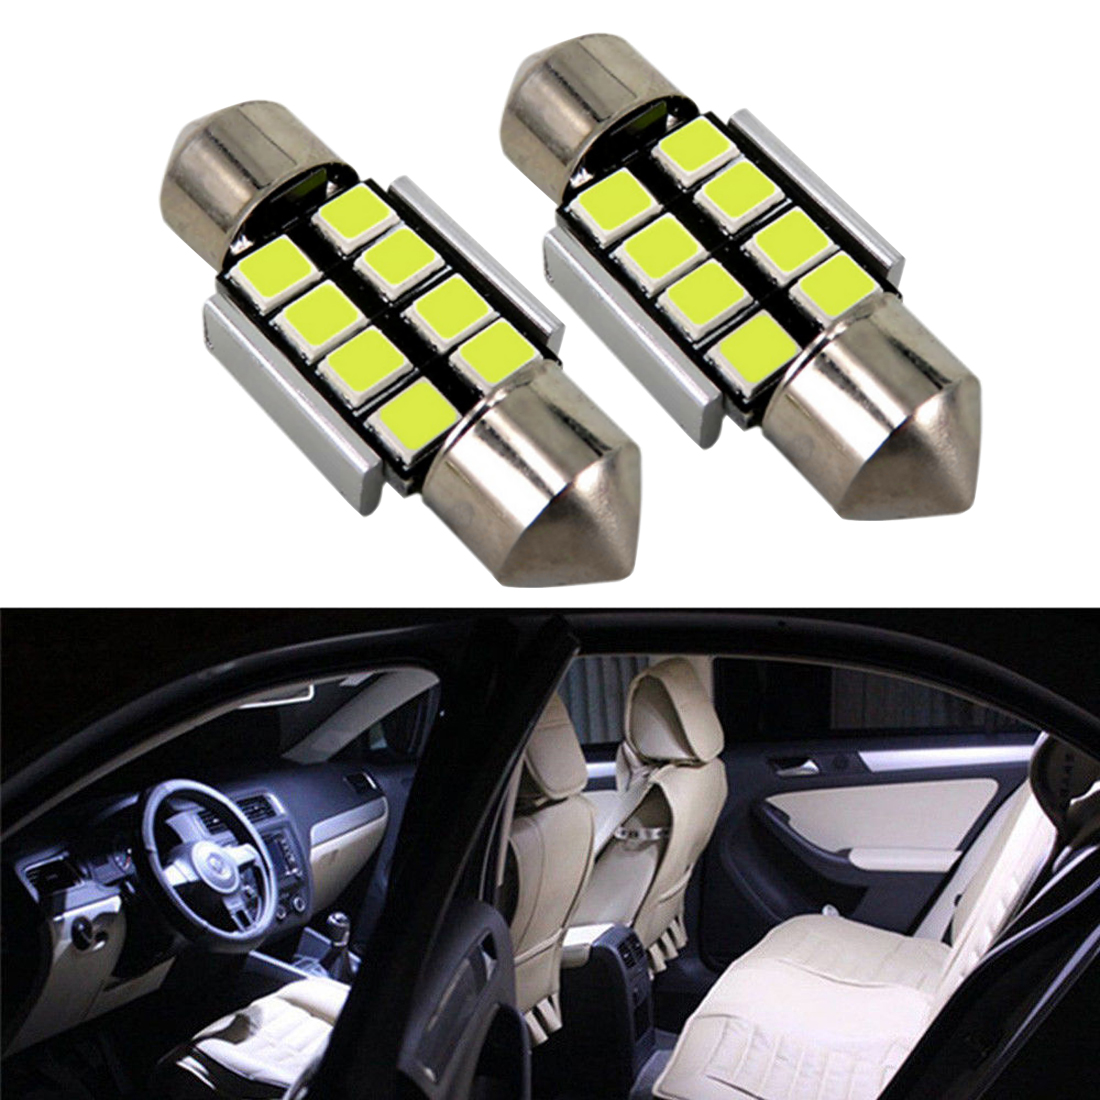 2 x 36mm 2835 Festoon Canbus 12SMD LED Car Interior Dome Map Light Bulb Lamp EXT